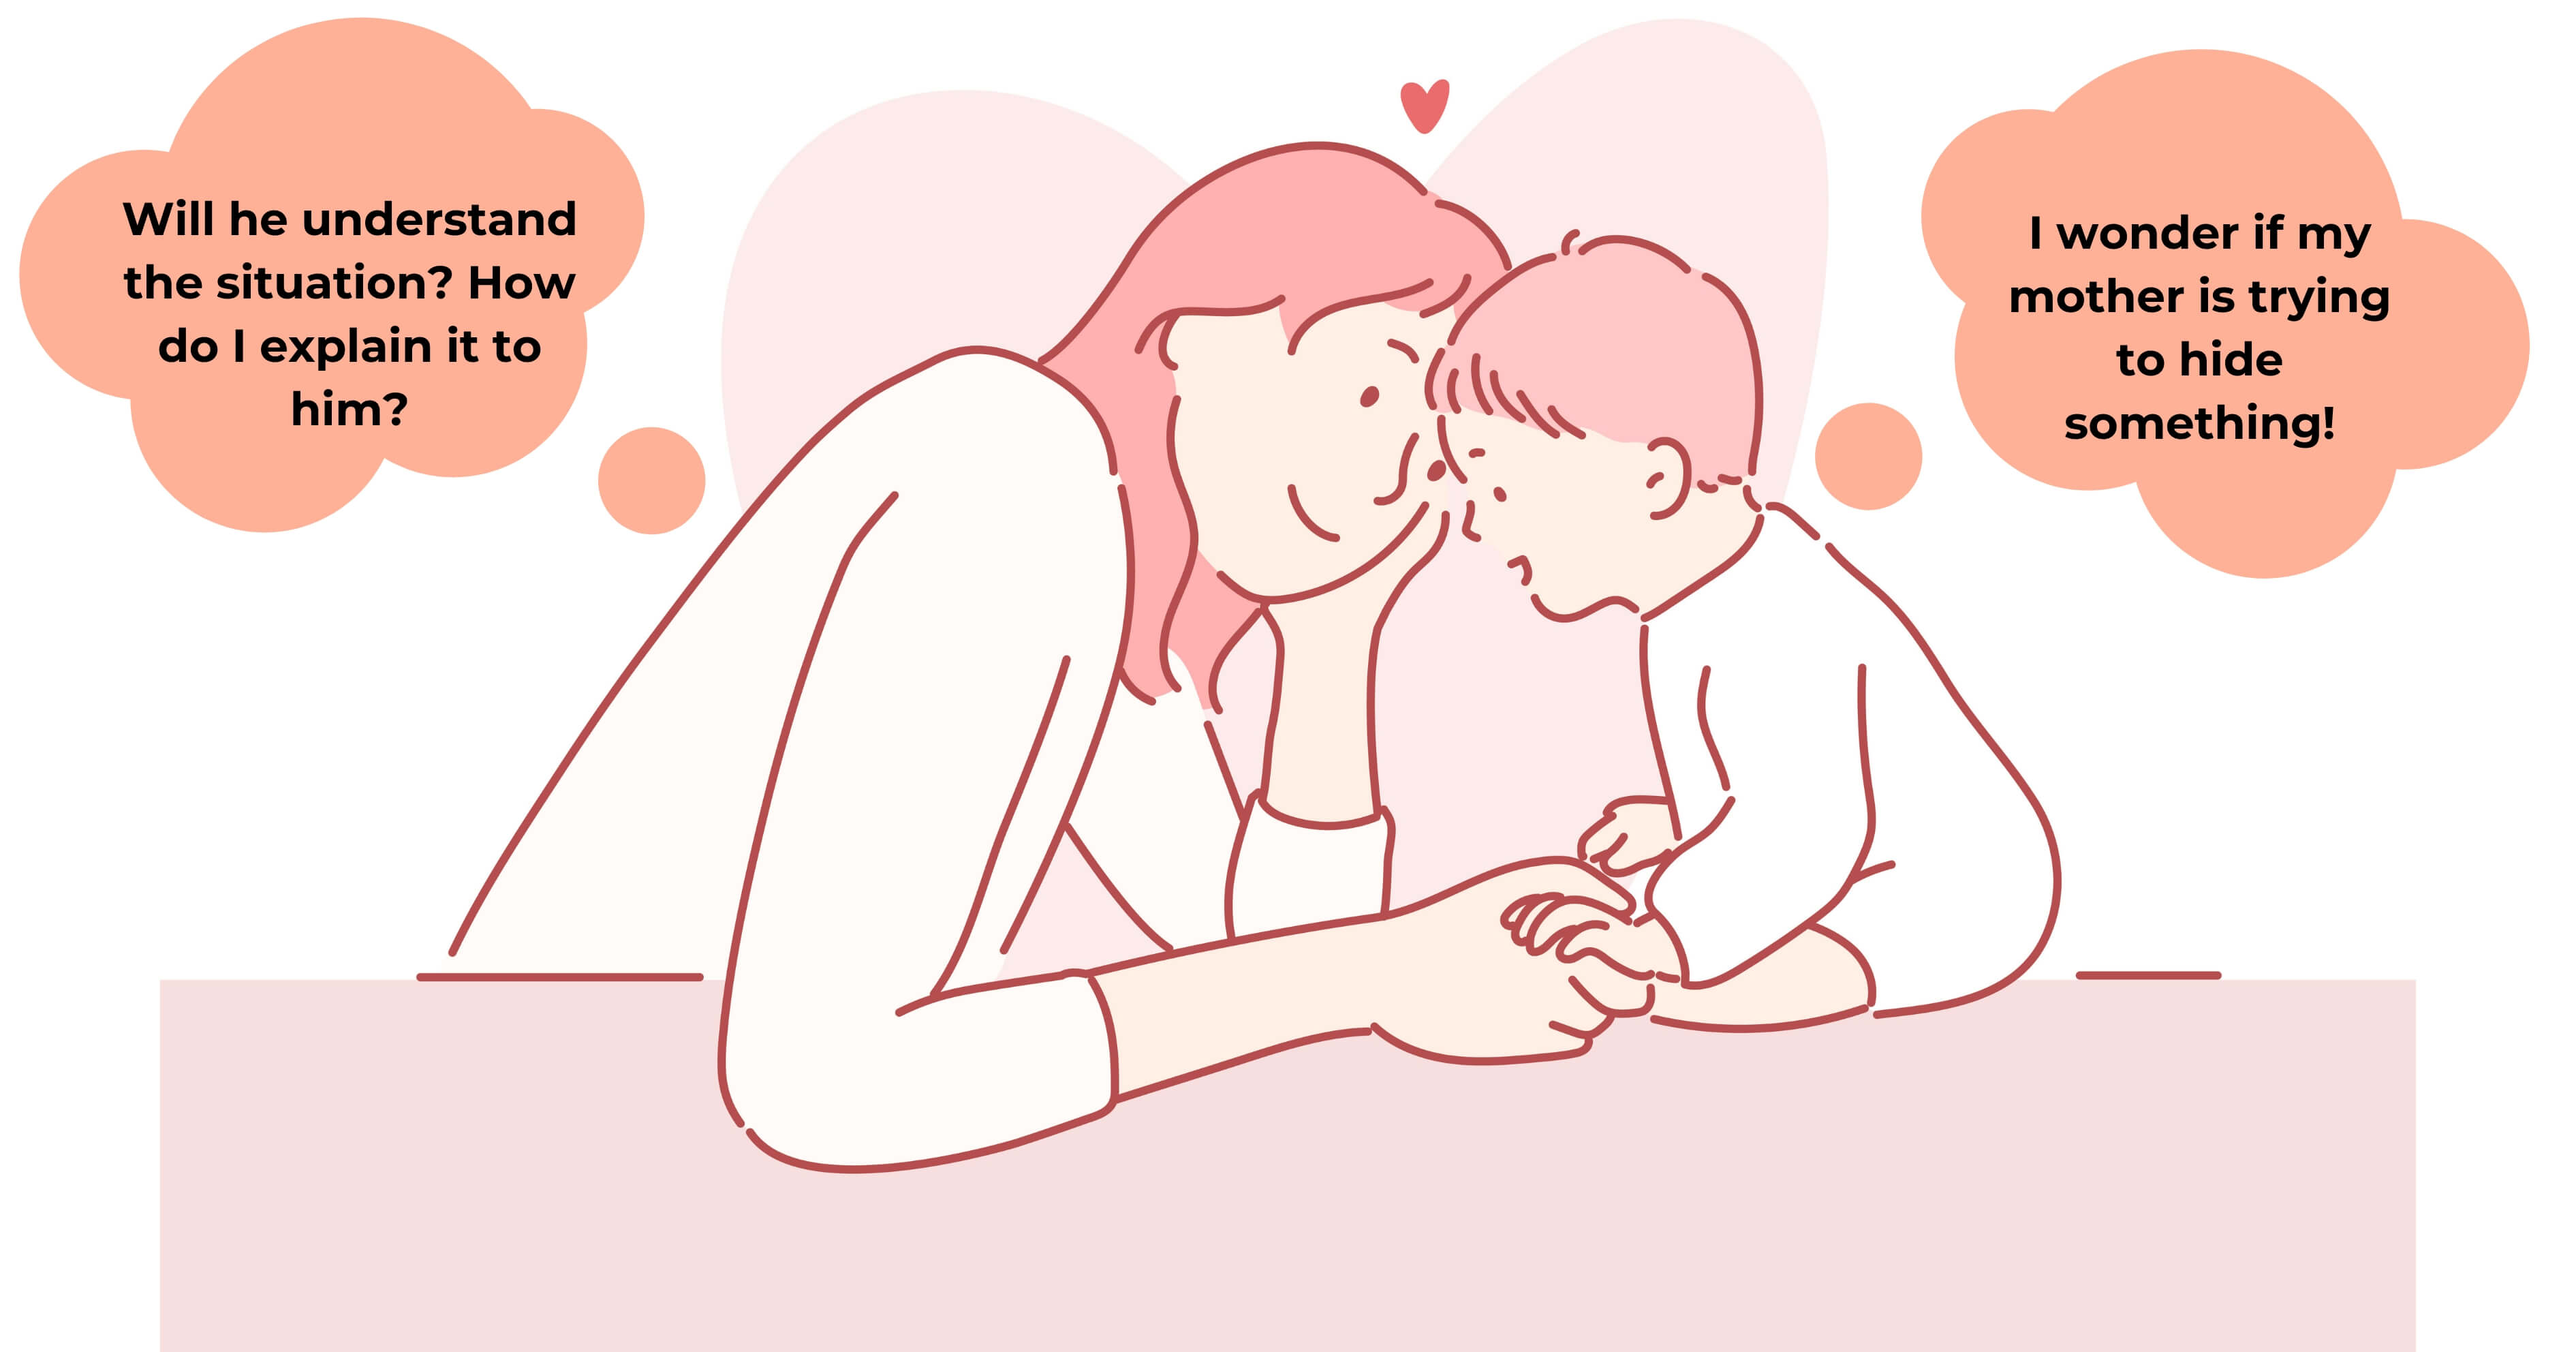 Speaking about your breast cancer with your child